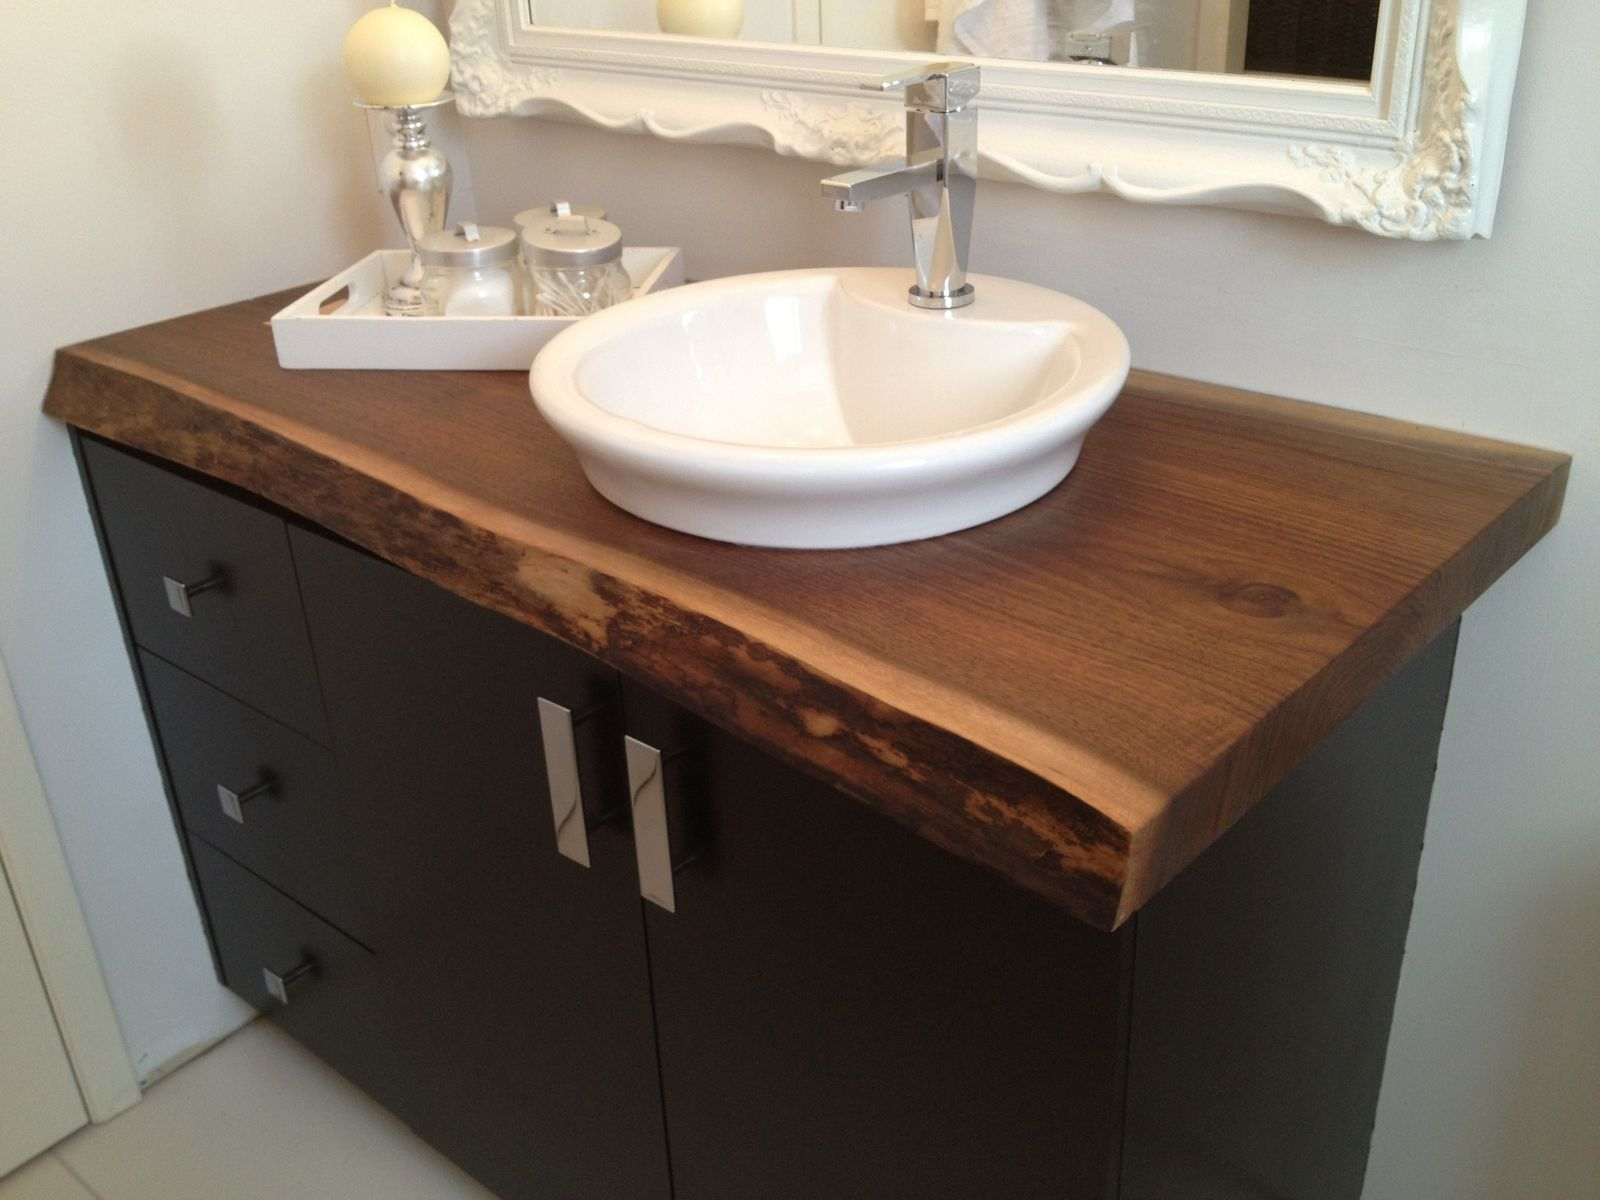 Bathroom Sinks Countertop : home decor bathroom sinks live edge black walnut bathroom countertop